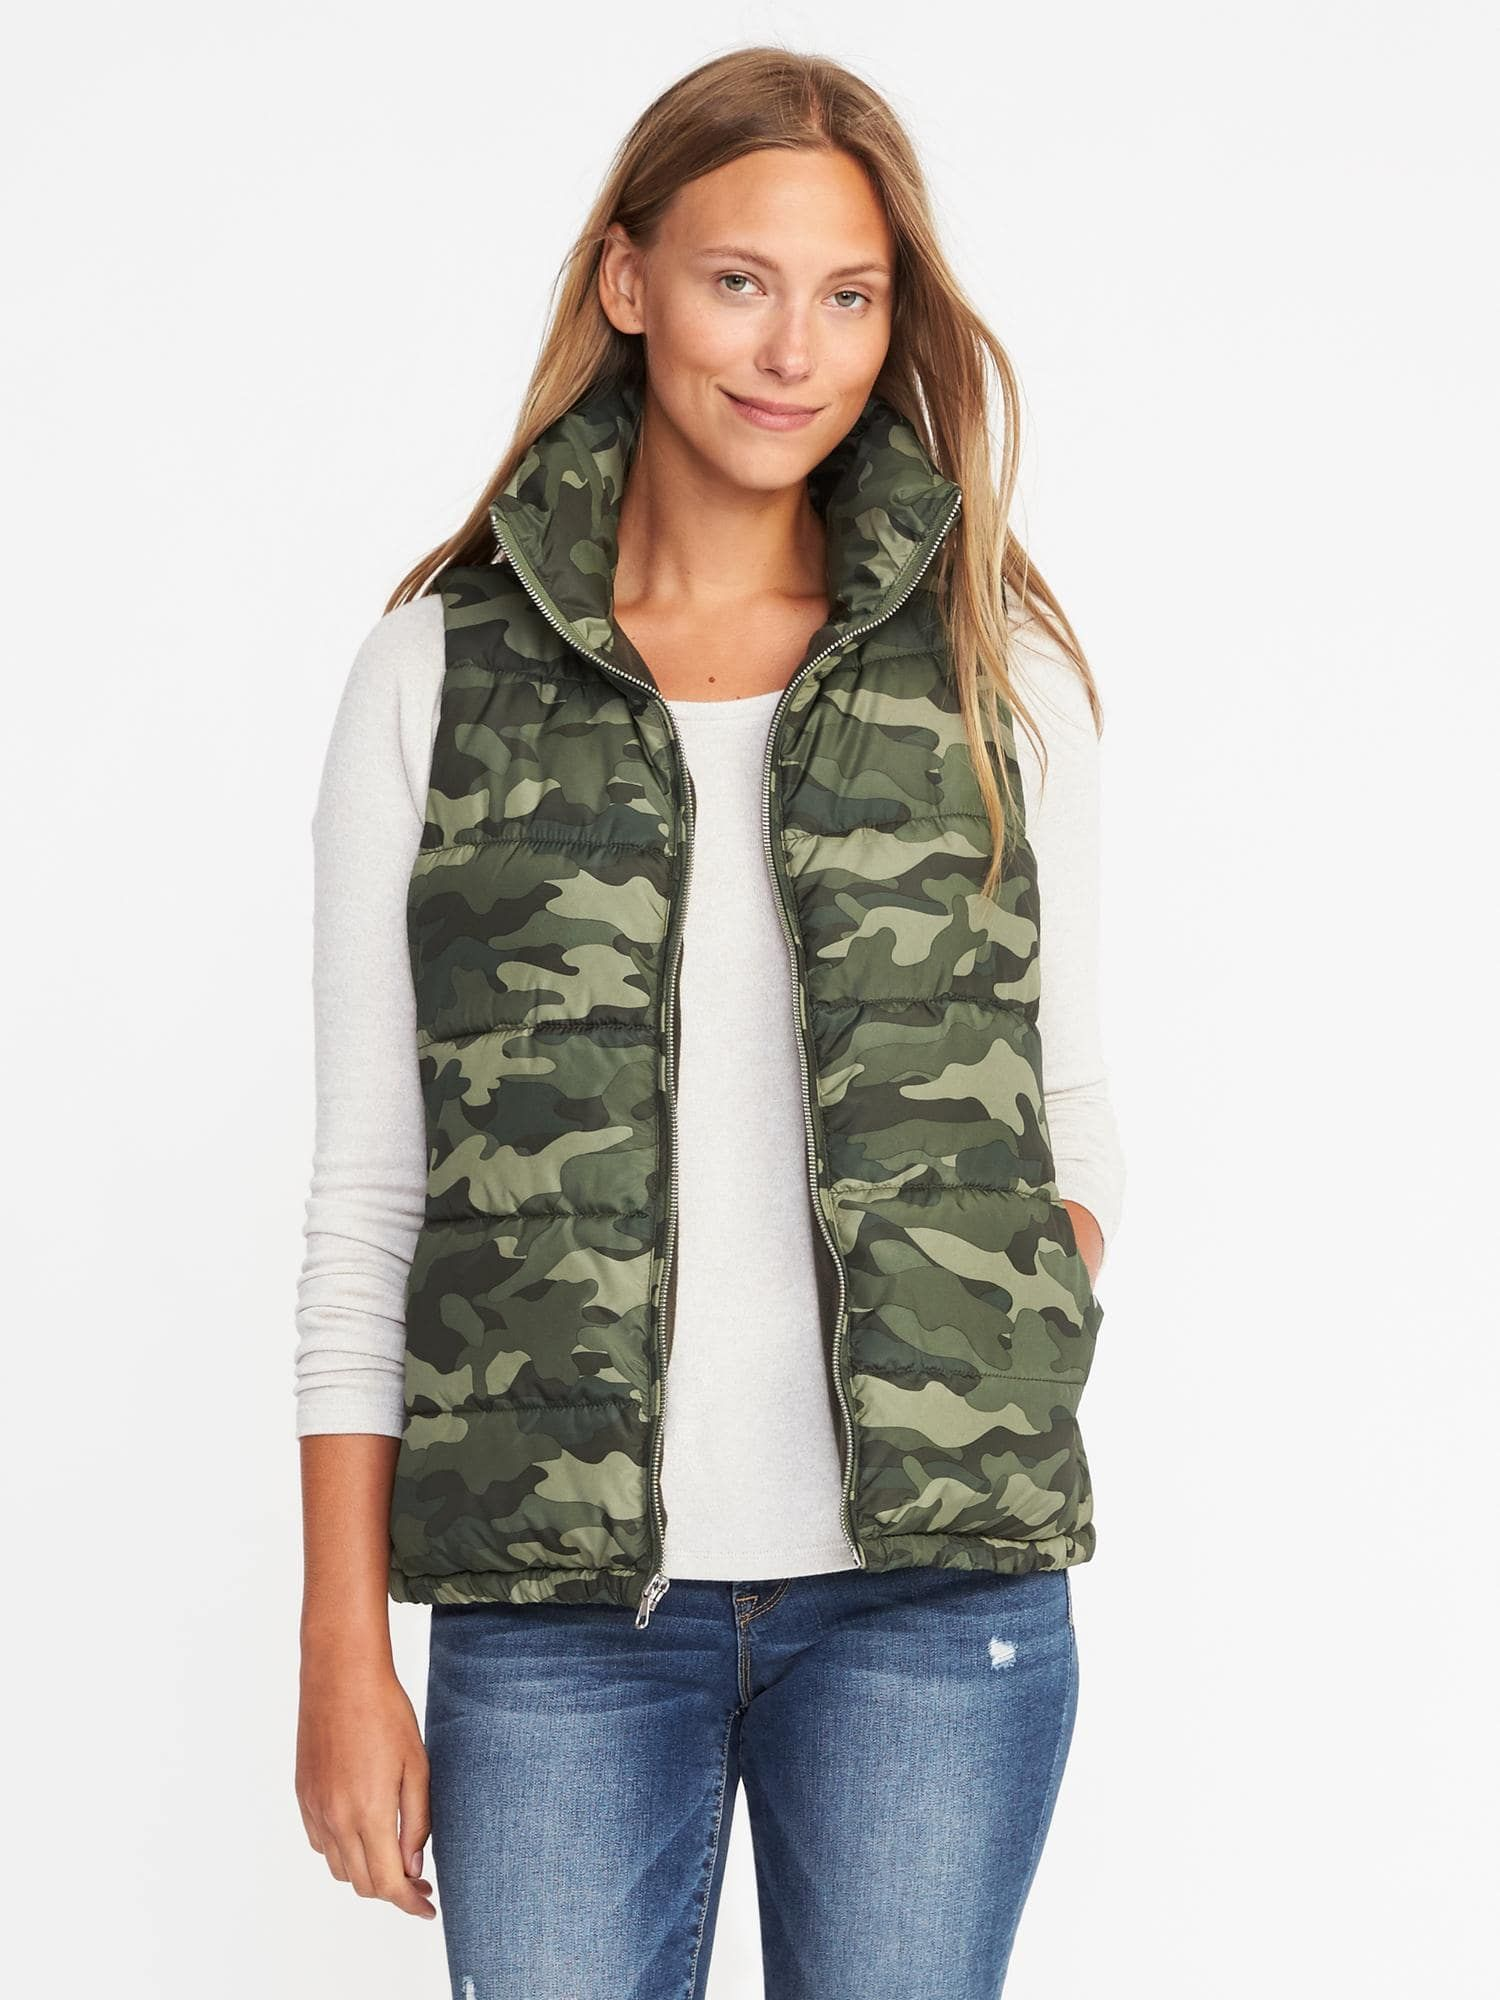 1183b29378243 Size small. Old navy camo vest